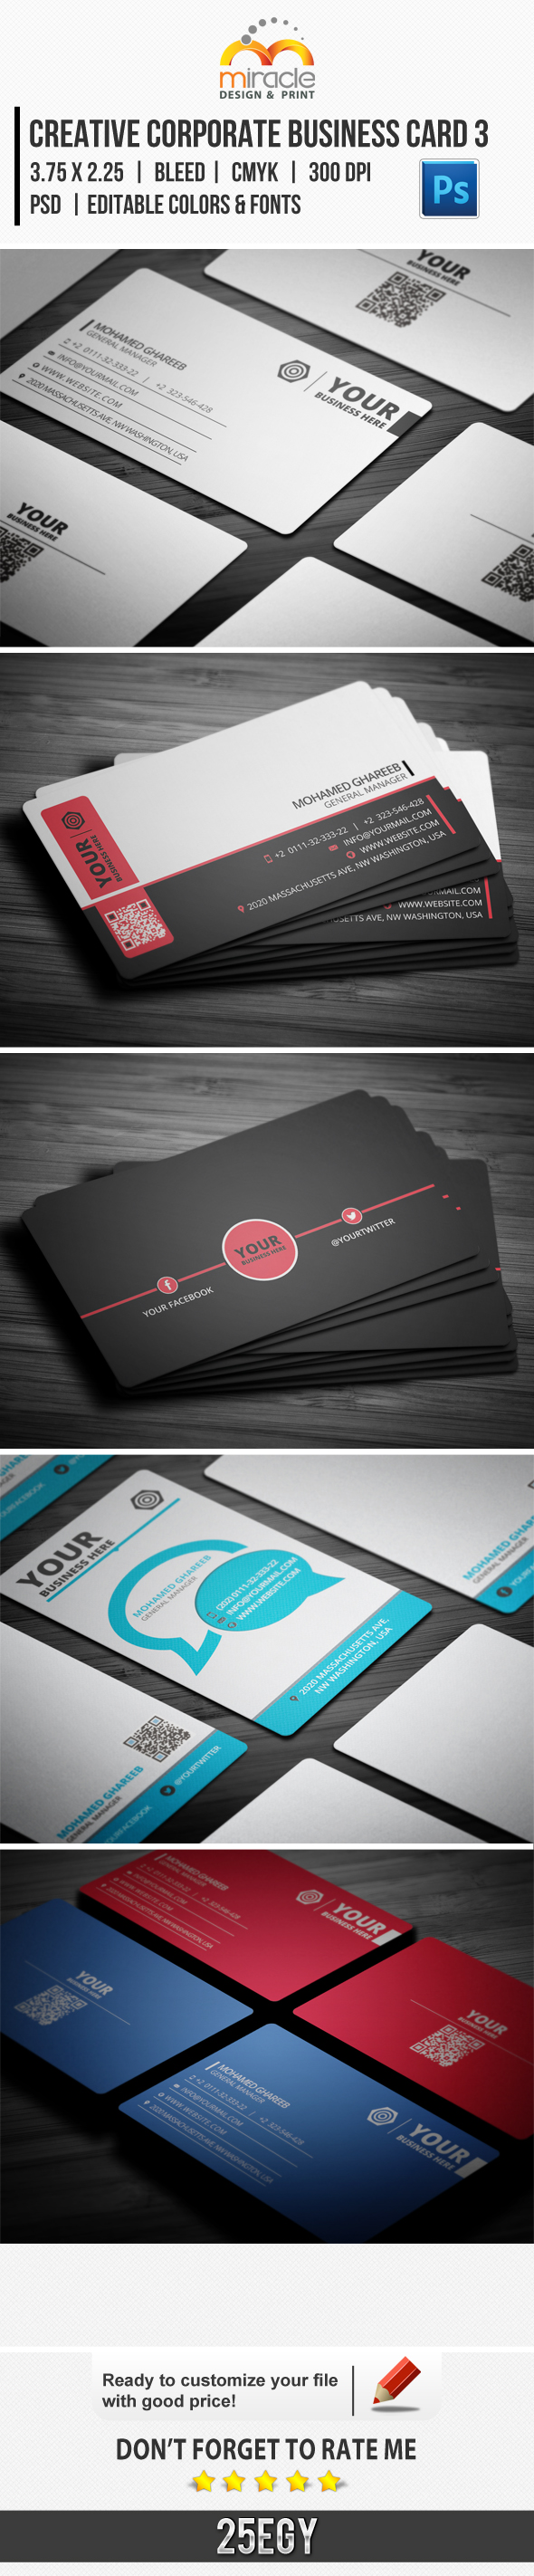 Express Business Cards Bundle 3 by EgYpToS on DeviantArt